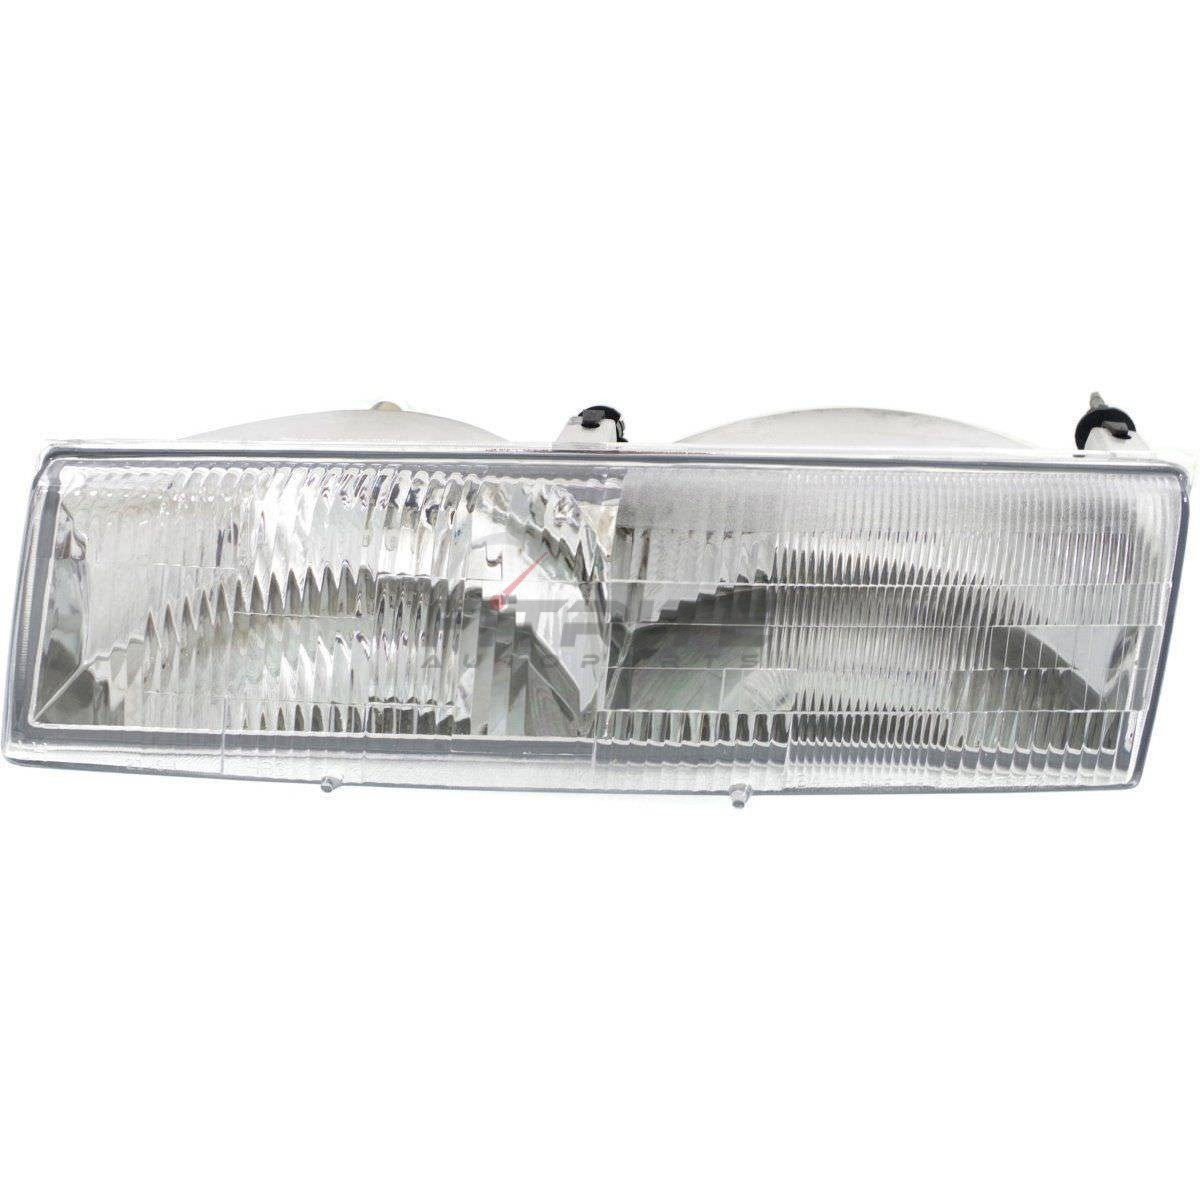 Details About New Left Side Headlamp Embly For 1992 1994 Mercury Grand Marquis Fo2502126